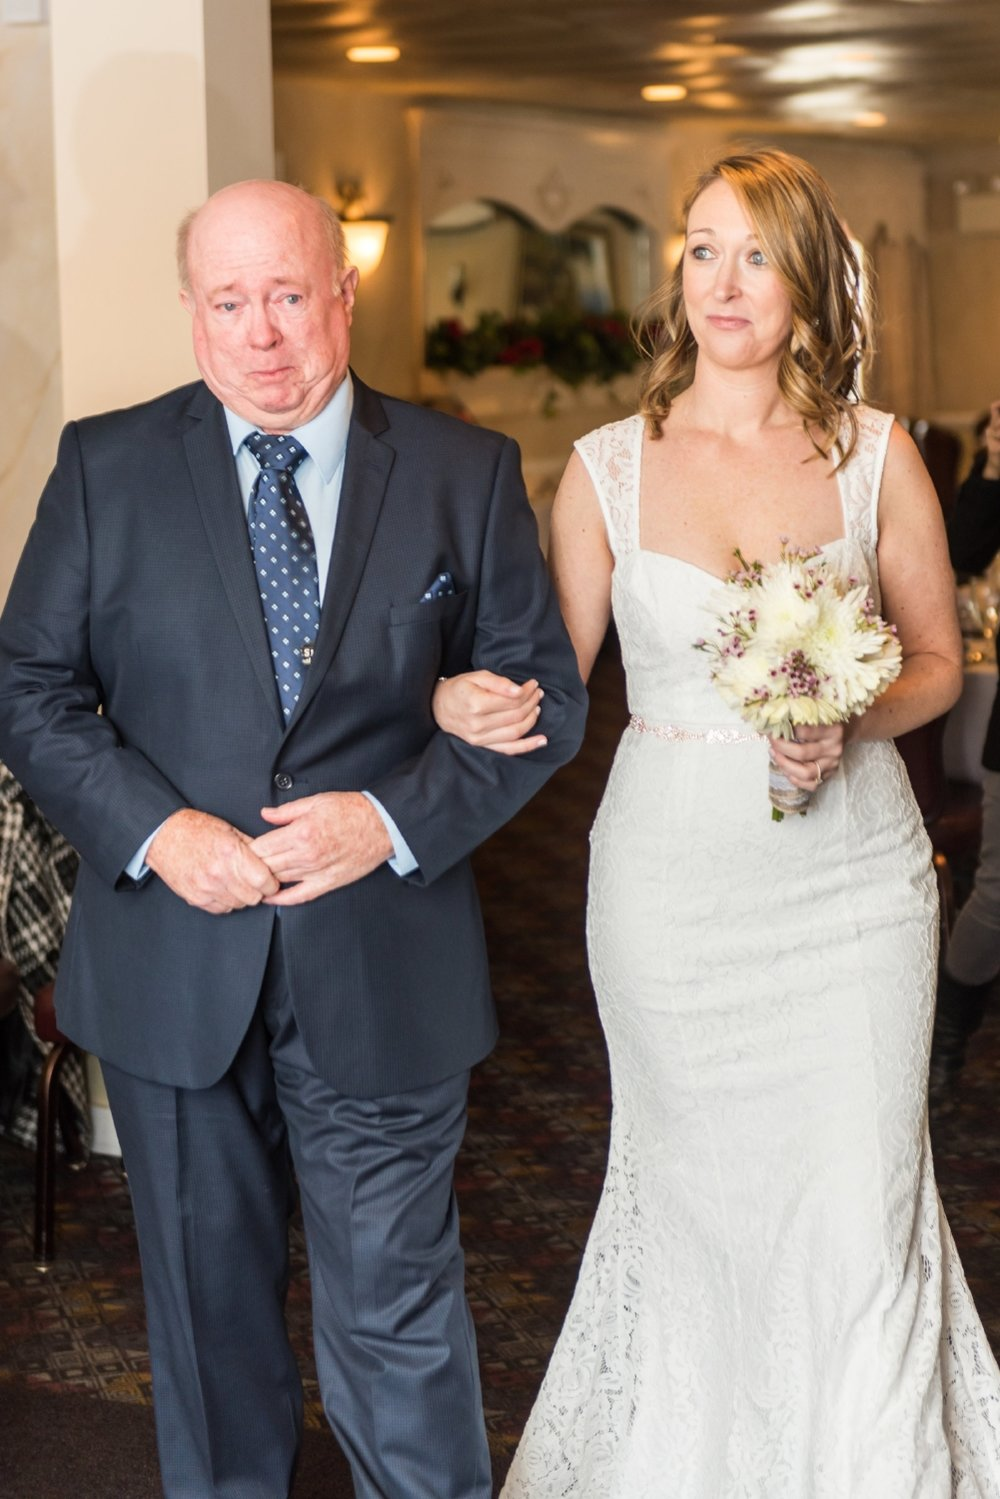 father-and-bride-walking-down-aisle